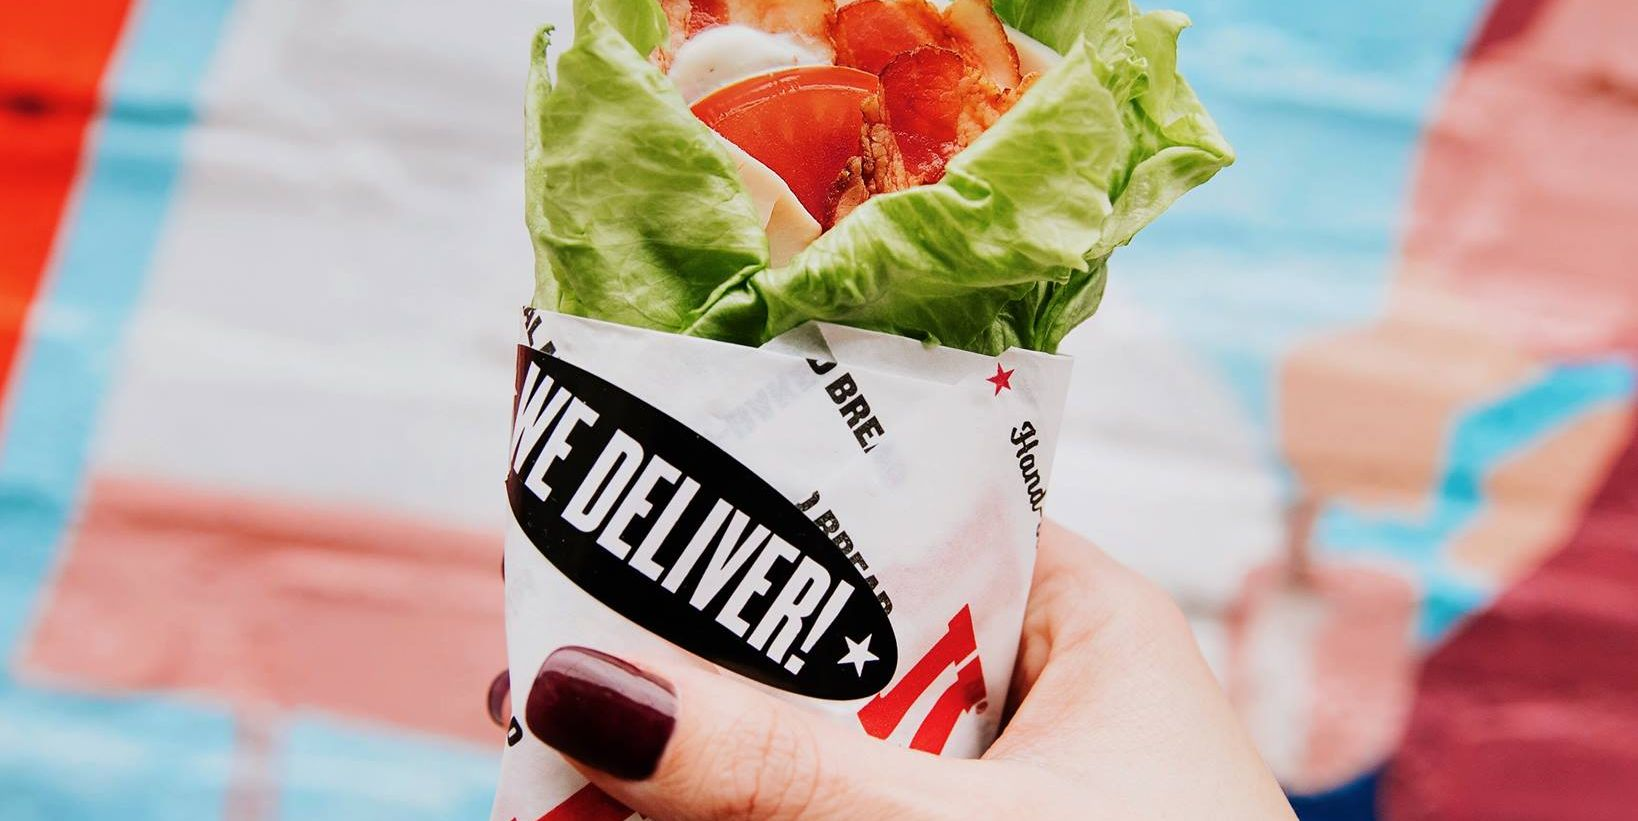 10 Best Low-Carb Fast Foods to Grab on the Go, According to Dietitians